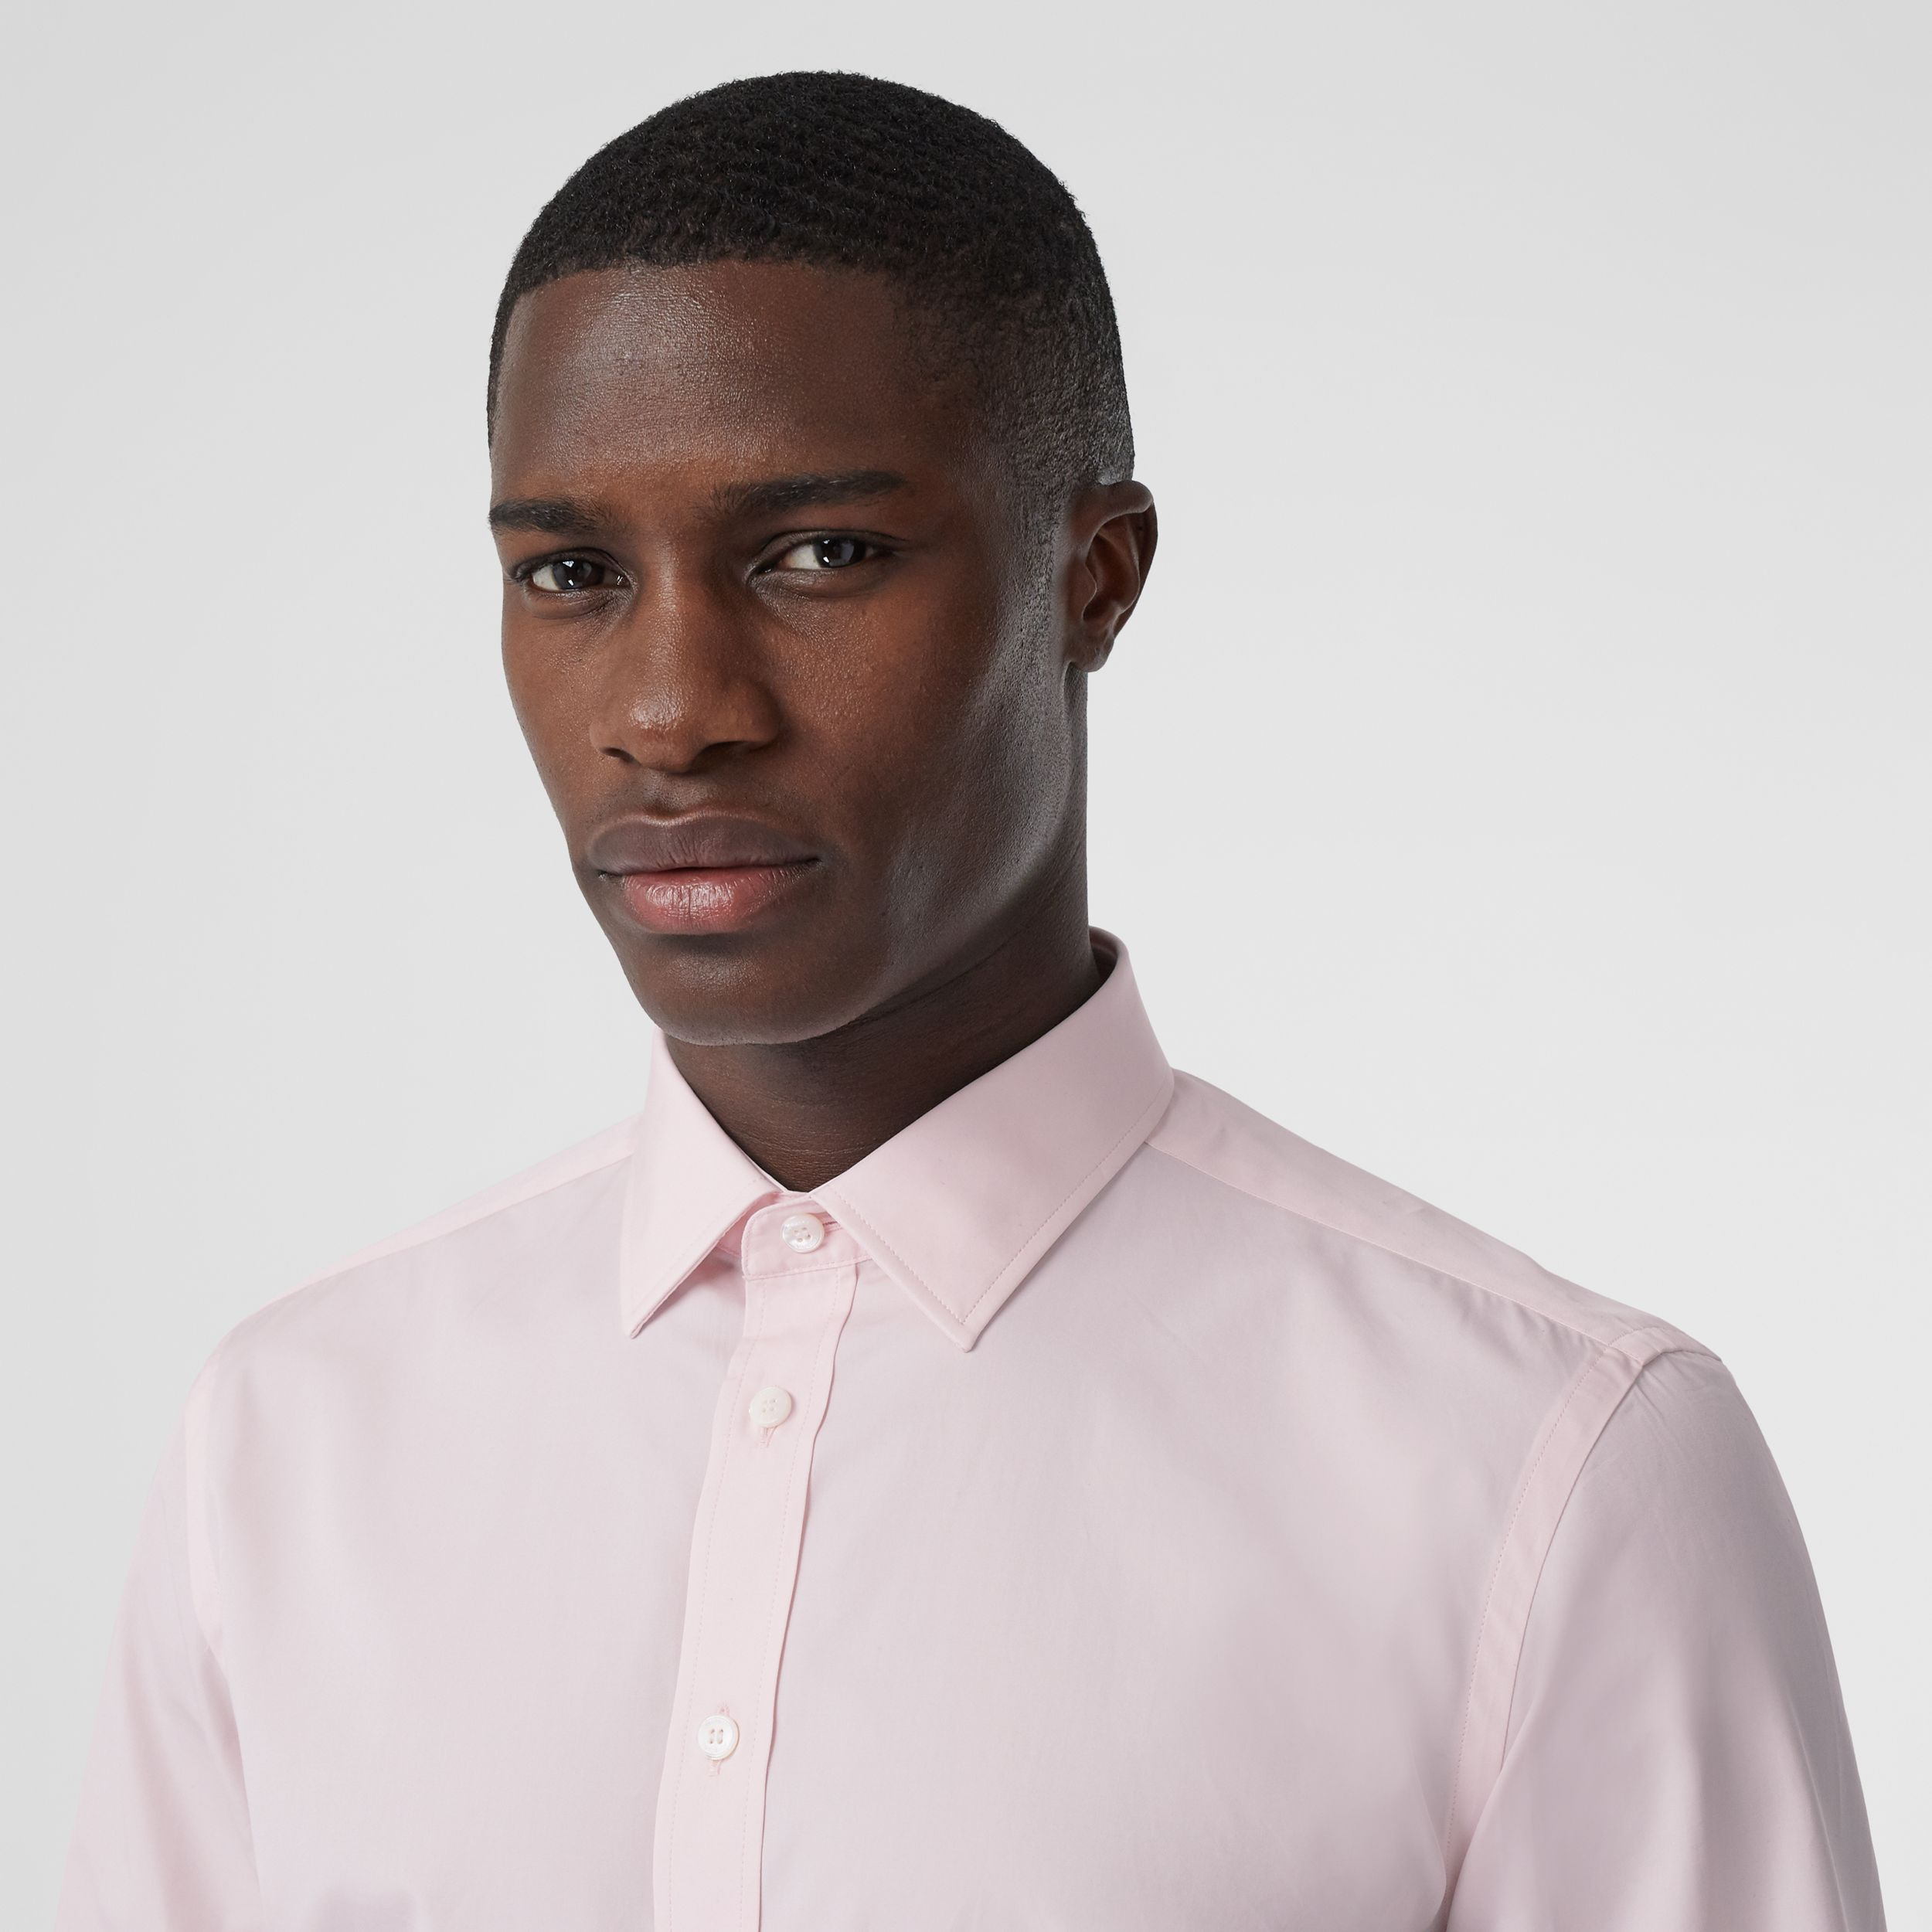 Slim Fit Monogram Motif Cotton Poplin Shirt in Alabaster Pink - Men | Burberry - 2